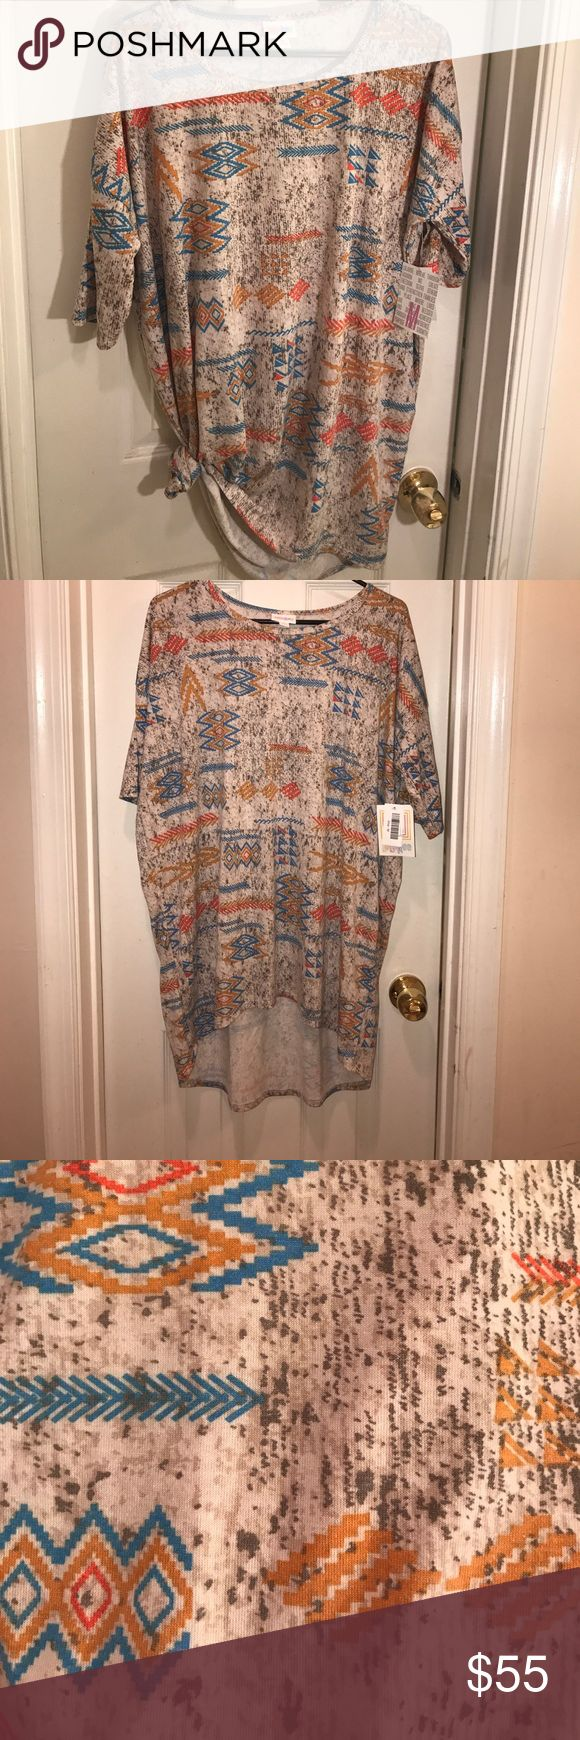 🦄 Alert! LuLaRoe HTF Aztec Print Irma Tunic The Irma tunic is SUPER comfortable, chic and highly versatile. Can be worn as a casual tunic over leggings w/ boots or tied at the hip with jeans, pulled off the shoulder or over a tank top. Med fits sizes 8-14. The high/low cut and dolman sleeve that goes to the elbow is incredibly stylish (and my arms appreciate the coverage). This print tho? Crazy cool and impossible to find. Bright blue, mustard & coral over muted cream and gray. Chevrons…